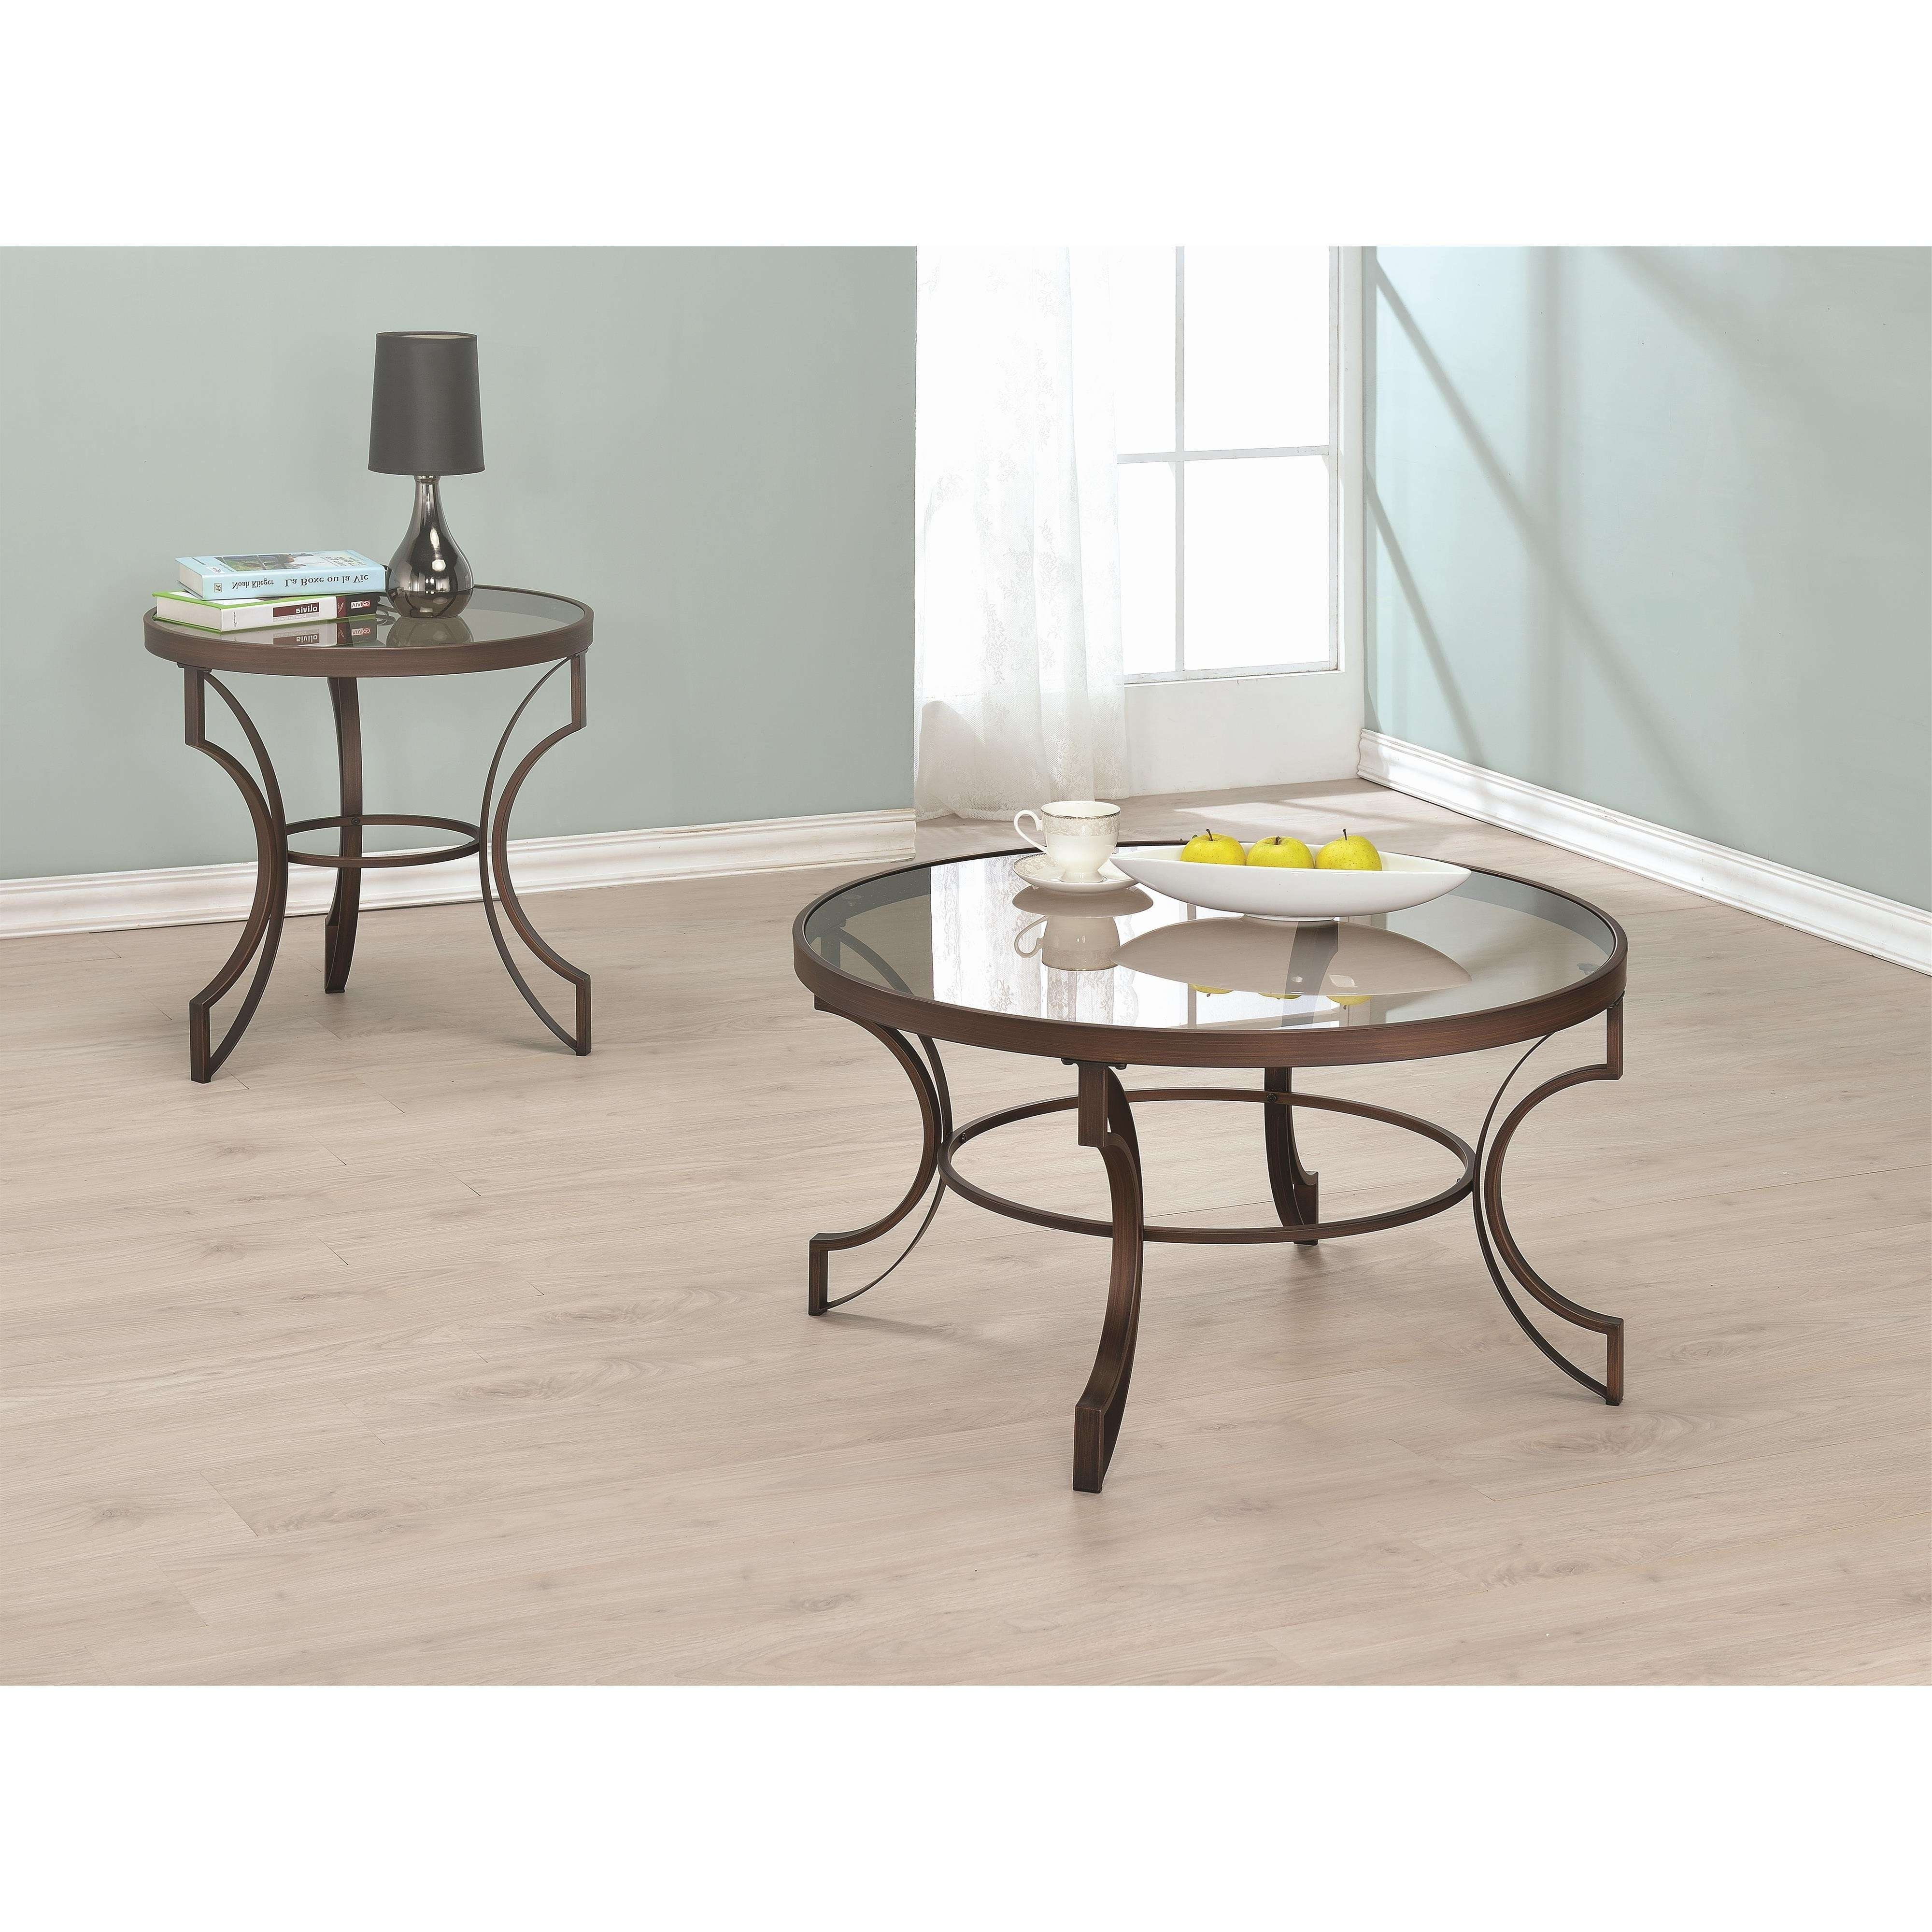 Buy Fairhaven Round Coffee Table With Bronze Metal Frame With Most Popular Bronze Coffee Tables (View 14 of 20)